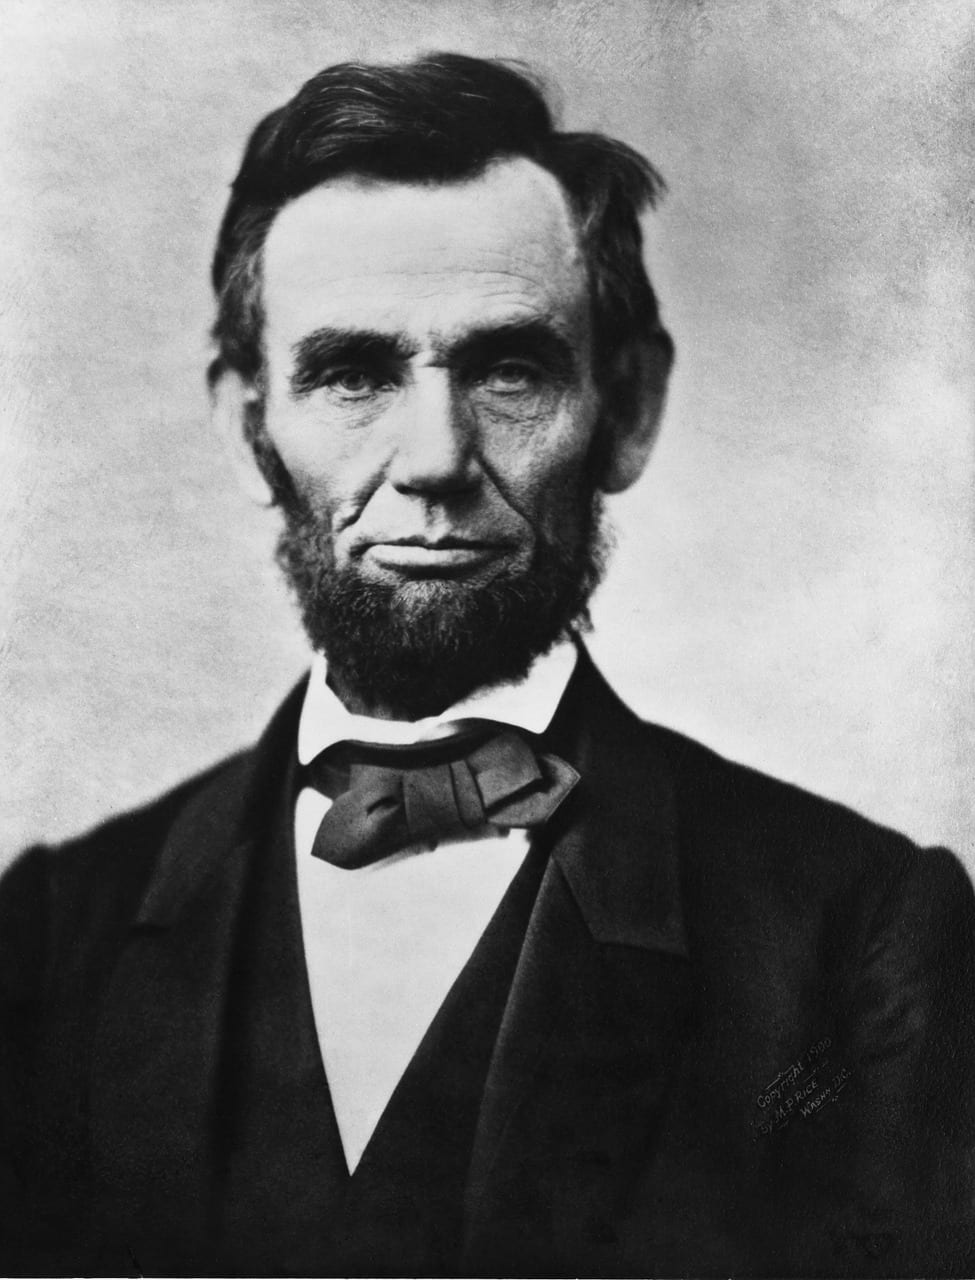 Lincoln Gave His Gettysburg Address On This Day In 1863 – Here Are Related Resources